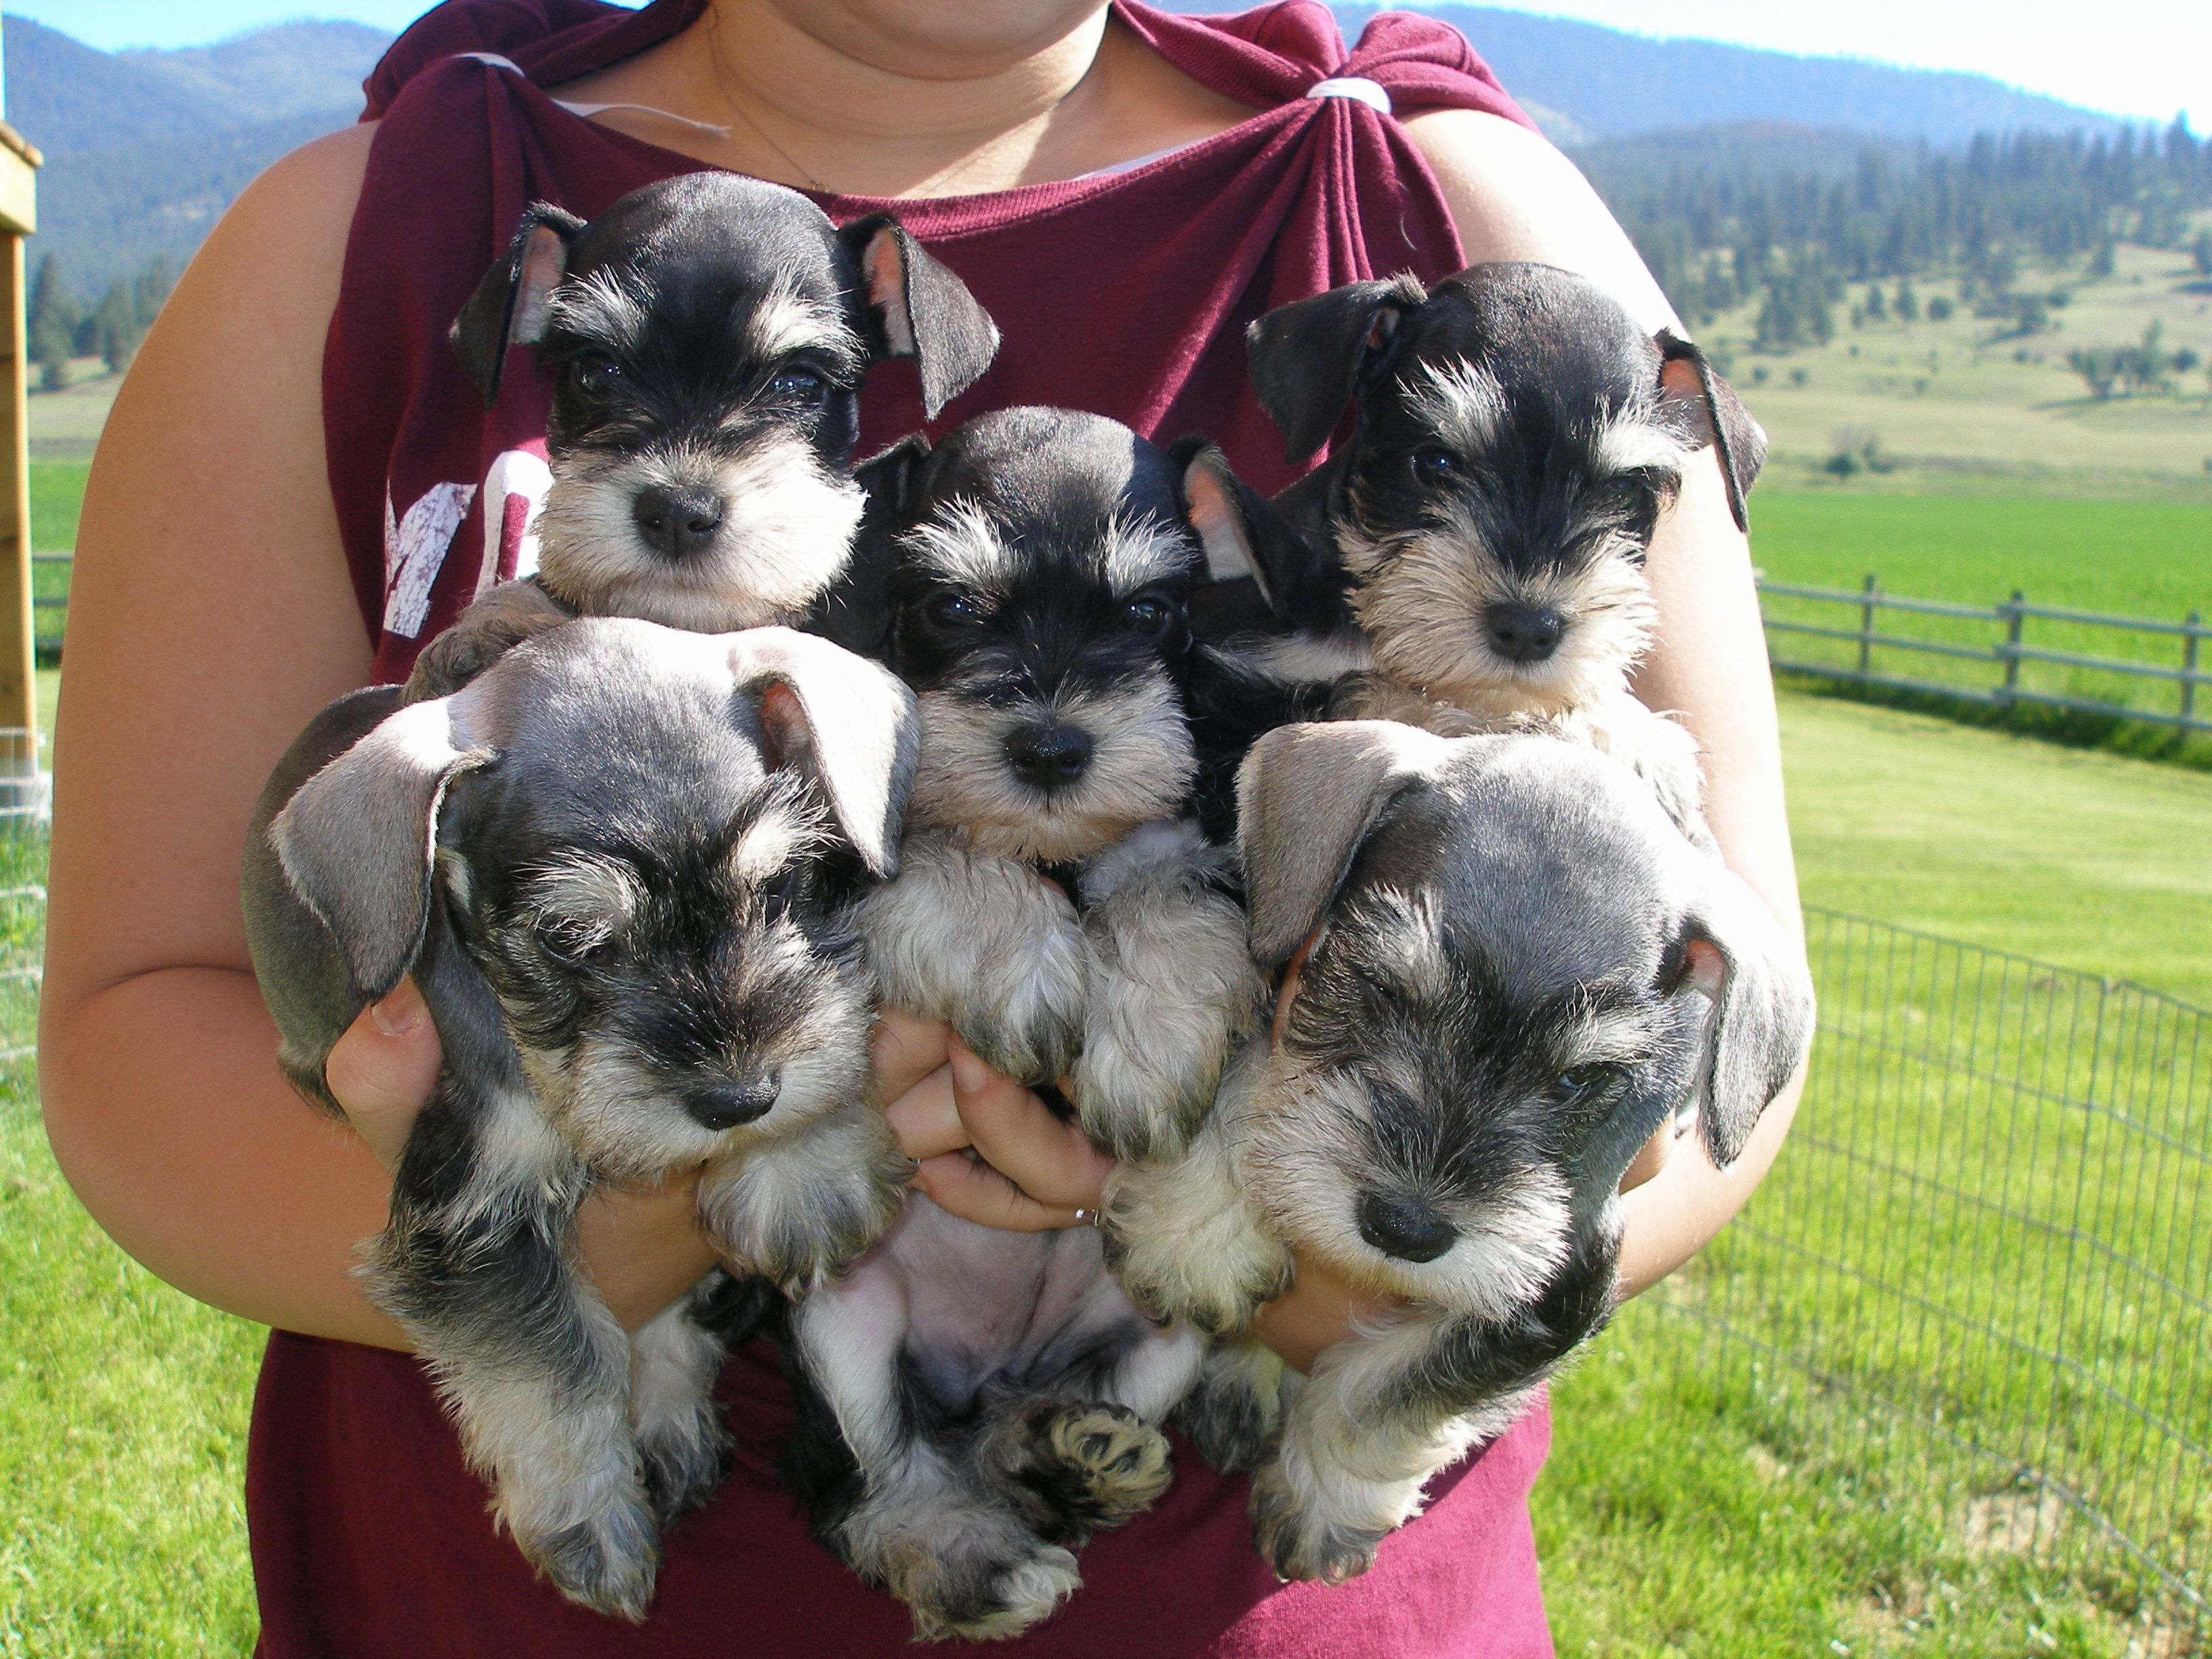 Mini Schnauzer Bouquet If Josh Got Me A Bouquet Of Puppies For Valentines Day I Would Kiss His Feet Schnauzer Puppy Miniature Schnauzer Puppies Schnauzer